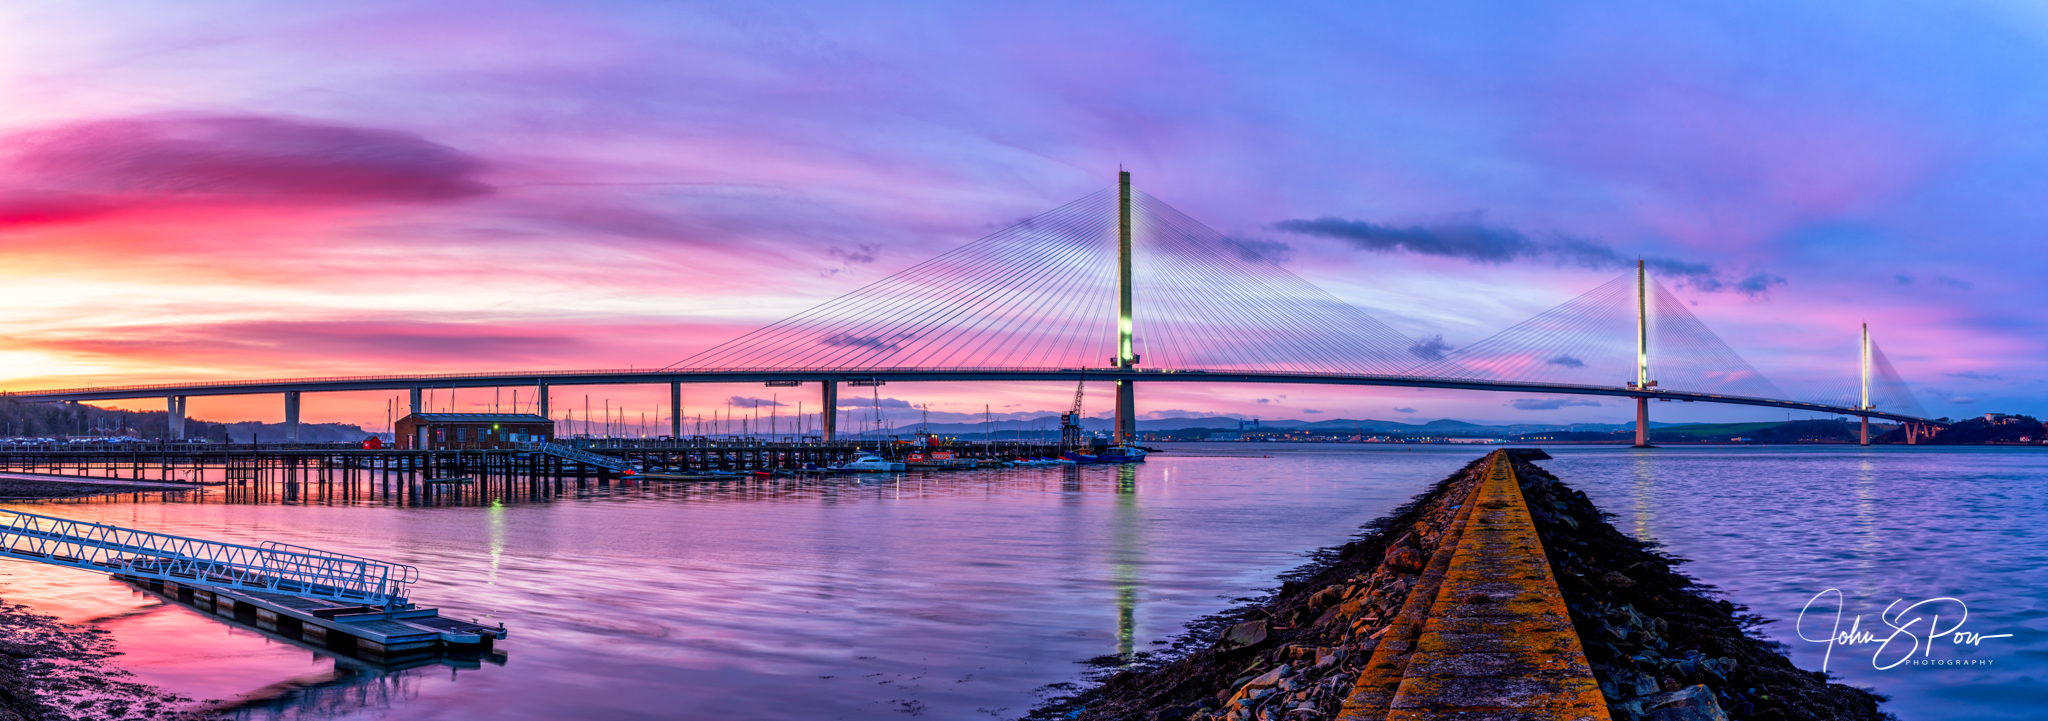 Queensferry Crossing at Sunset.